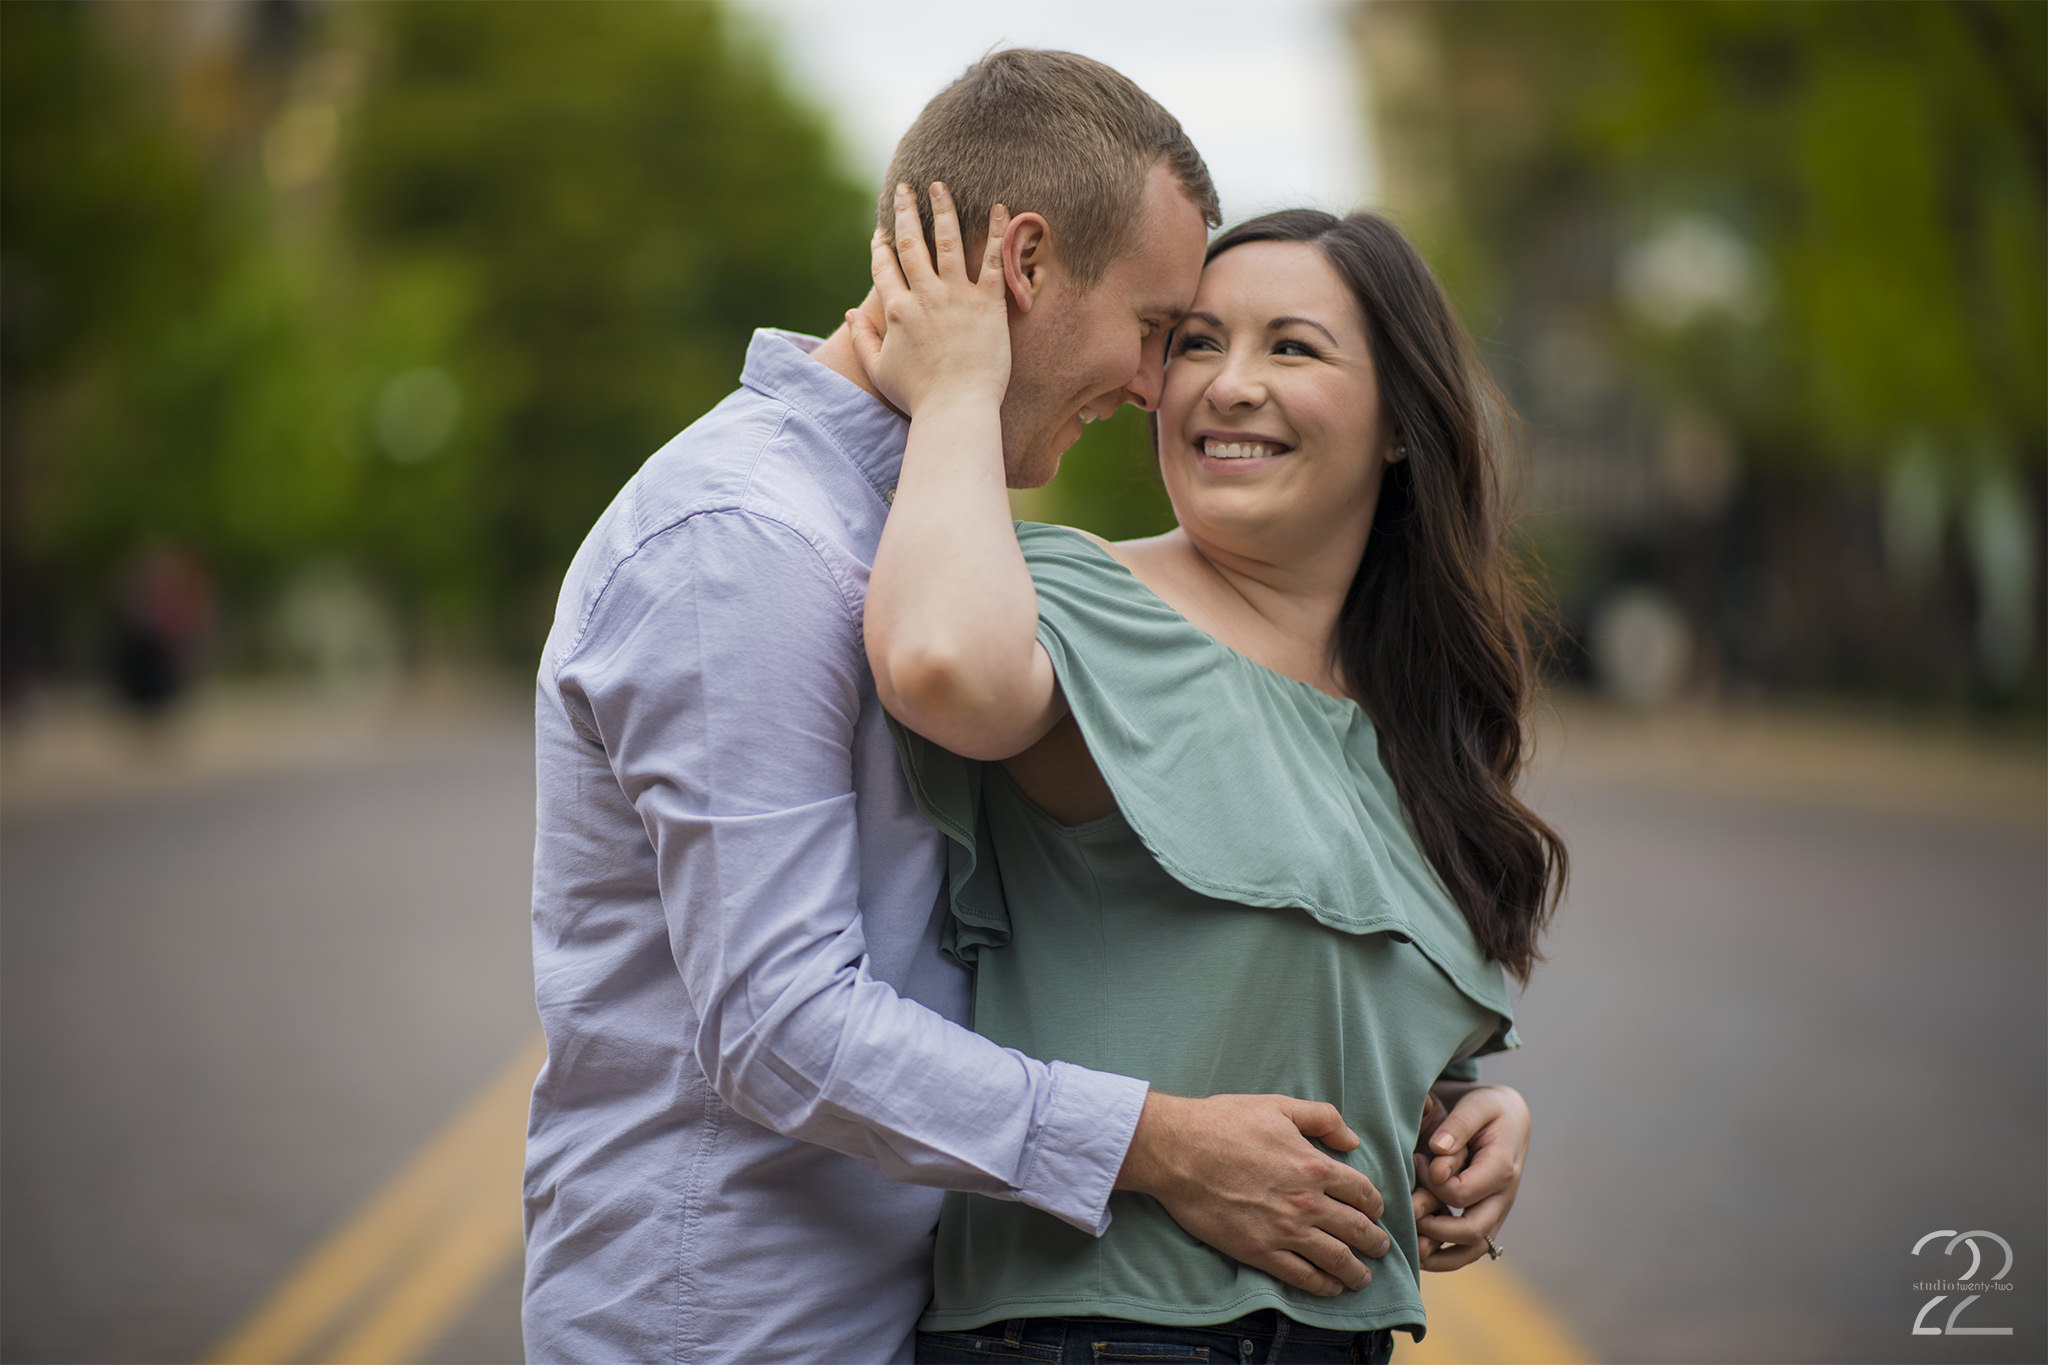 Man and woman embrace and smile in an empty road in the Oregon District by Dayton Wedding Photographer Studio 22 Photography